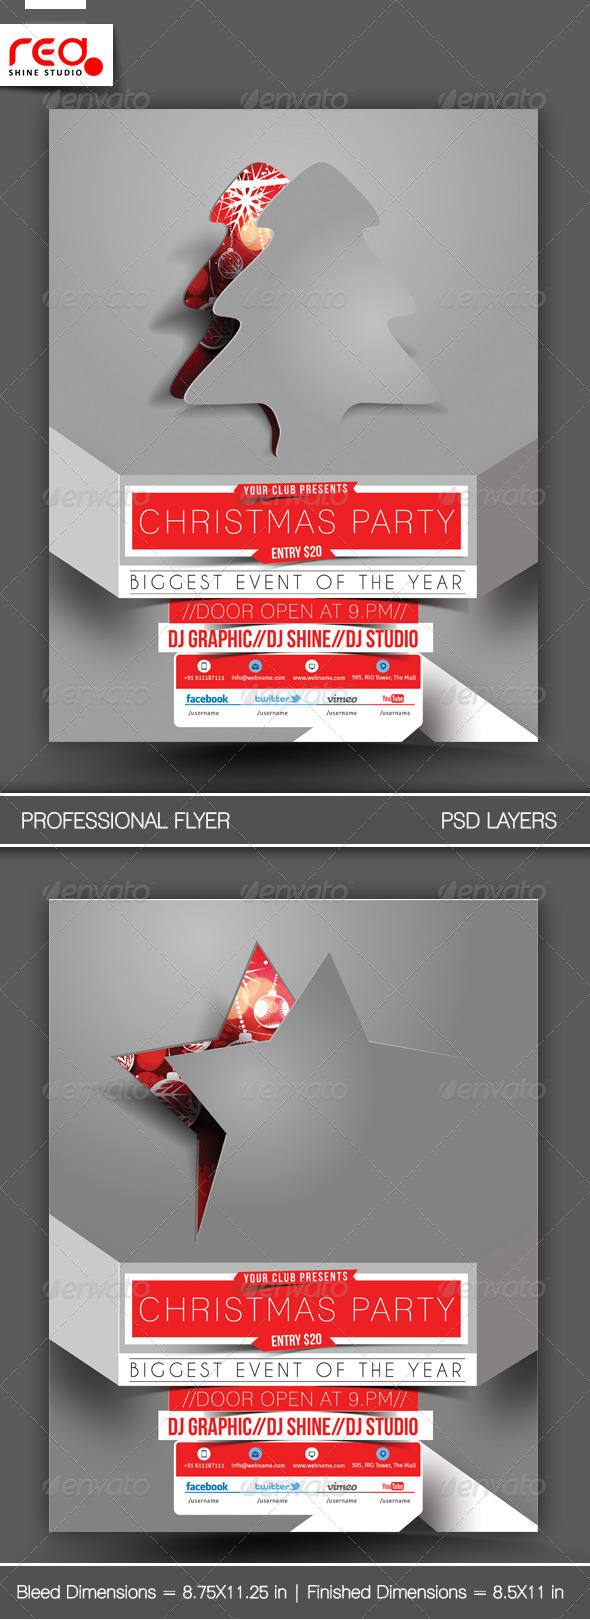 GraphicRiver Christmas Party Flyer & Poster Template 1 6056864